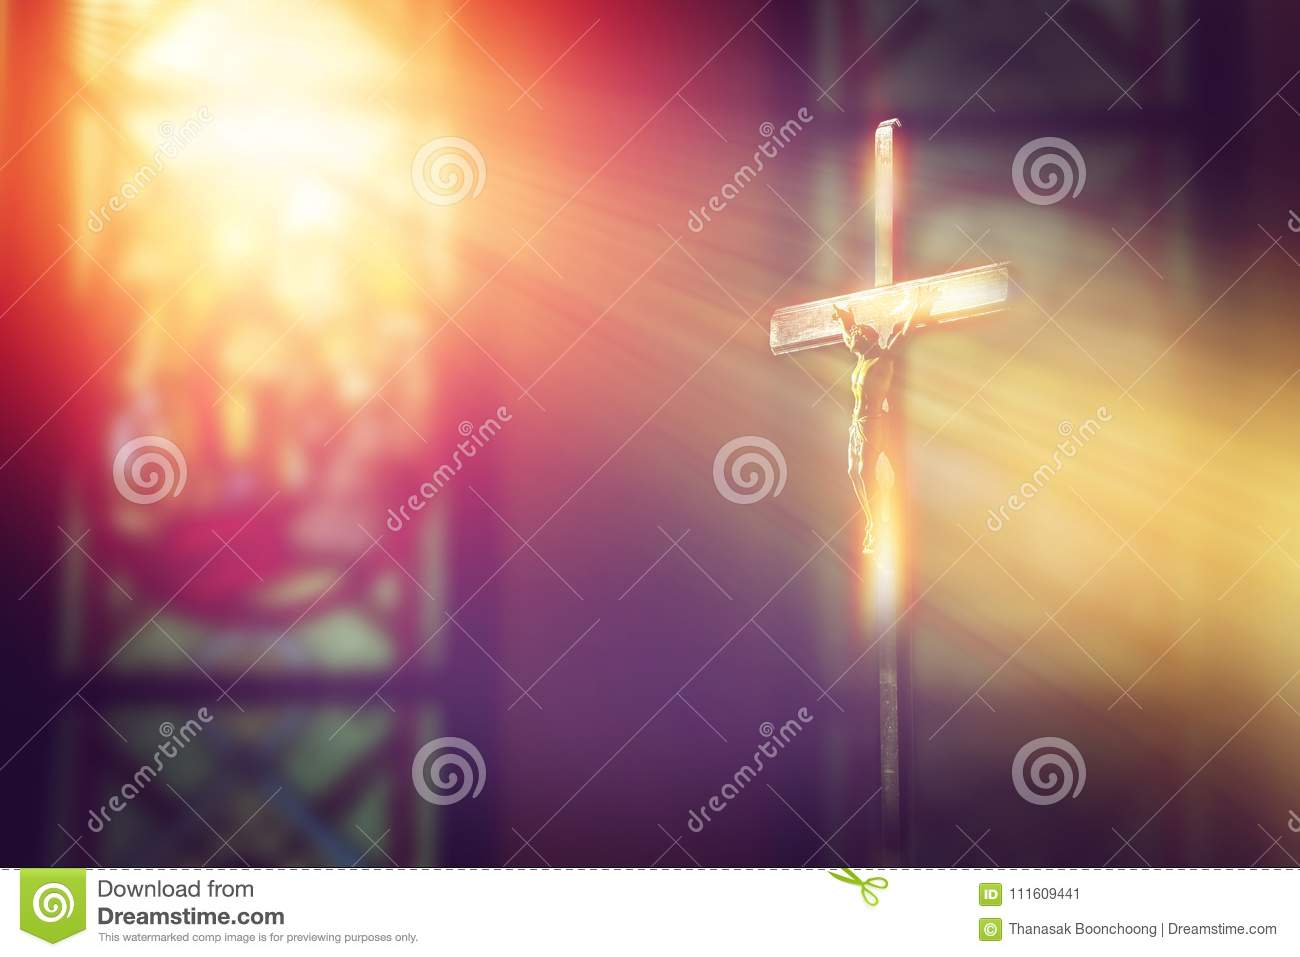 Crucifix, jesus on the cross in church with ray of light.